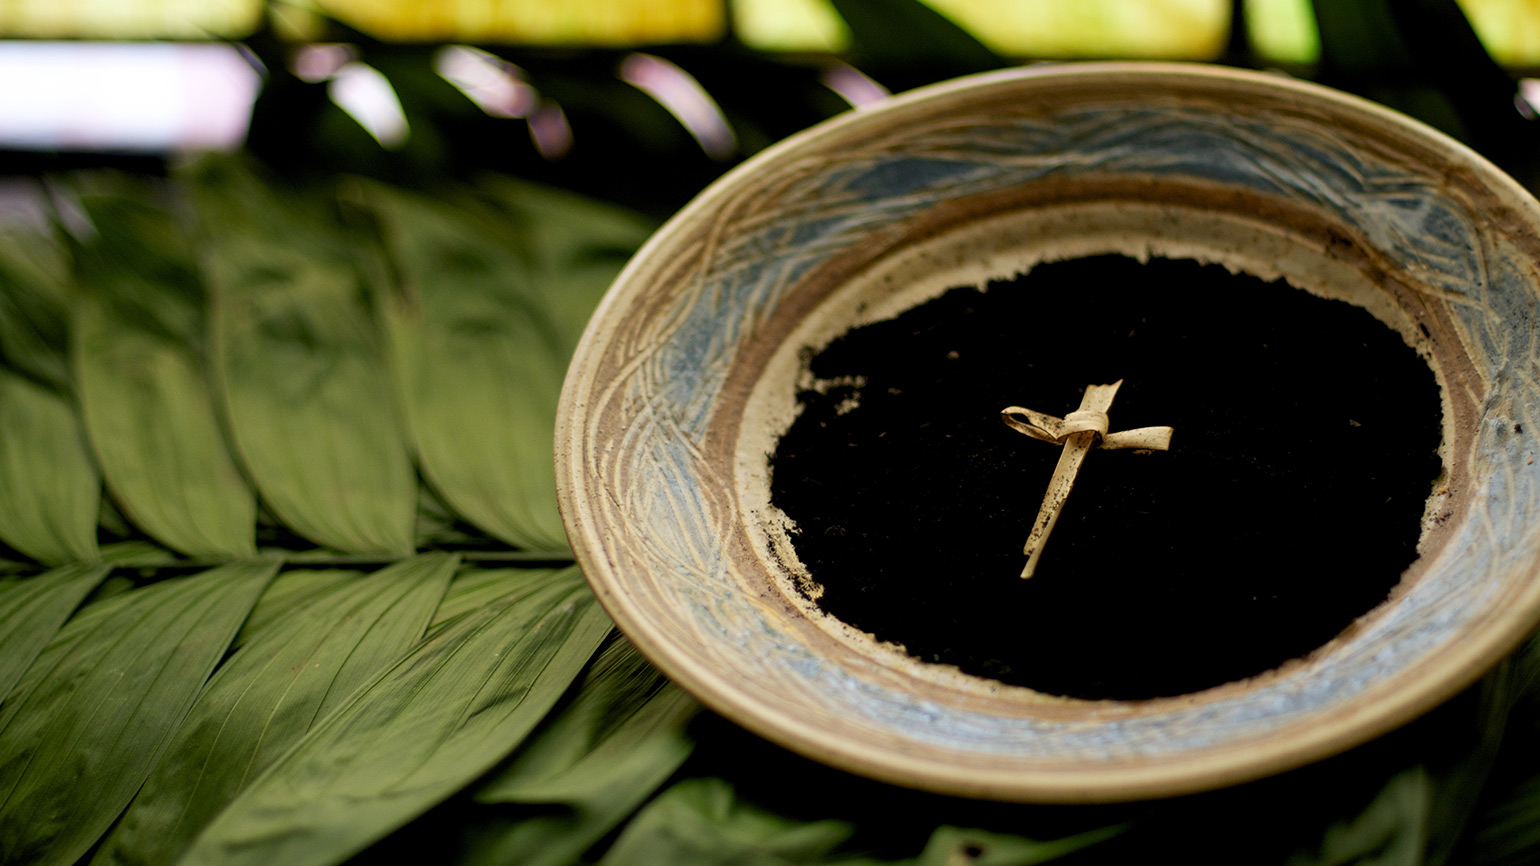 Palm fronds and a bowl of ashes for Ash Wednesday